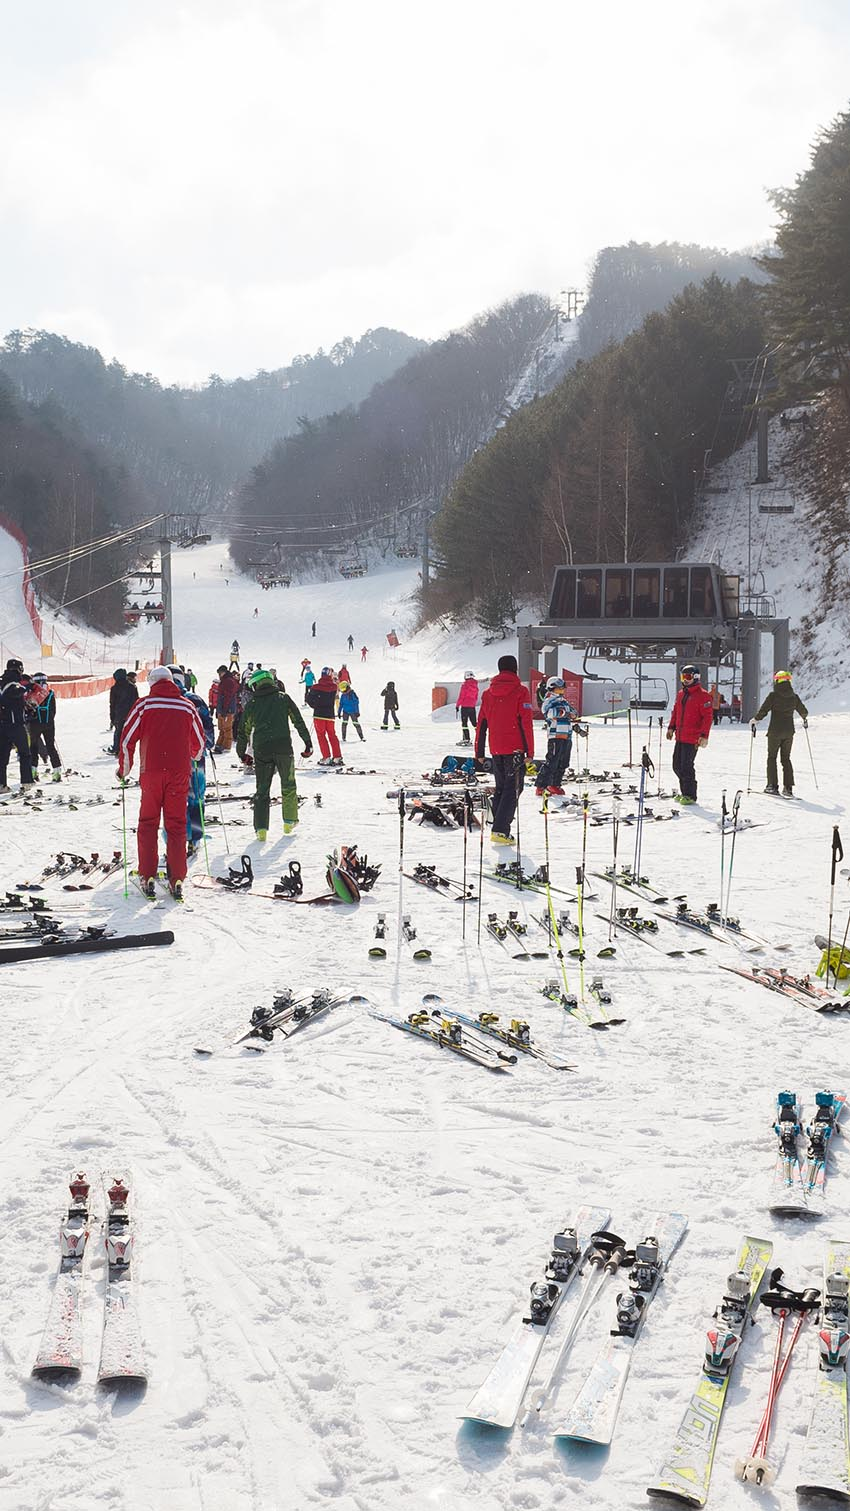 Equipment is left outside while owners take a break at Yongpyong Ski Resort.